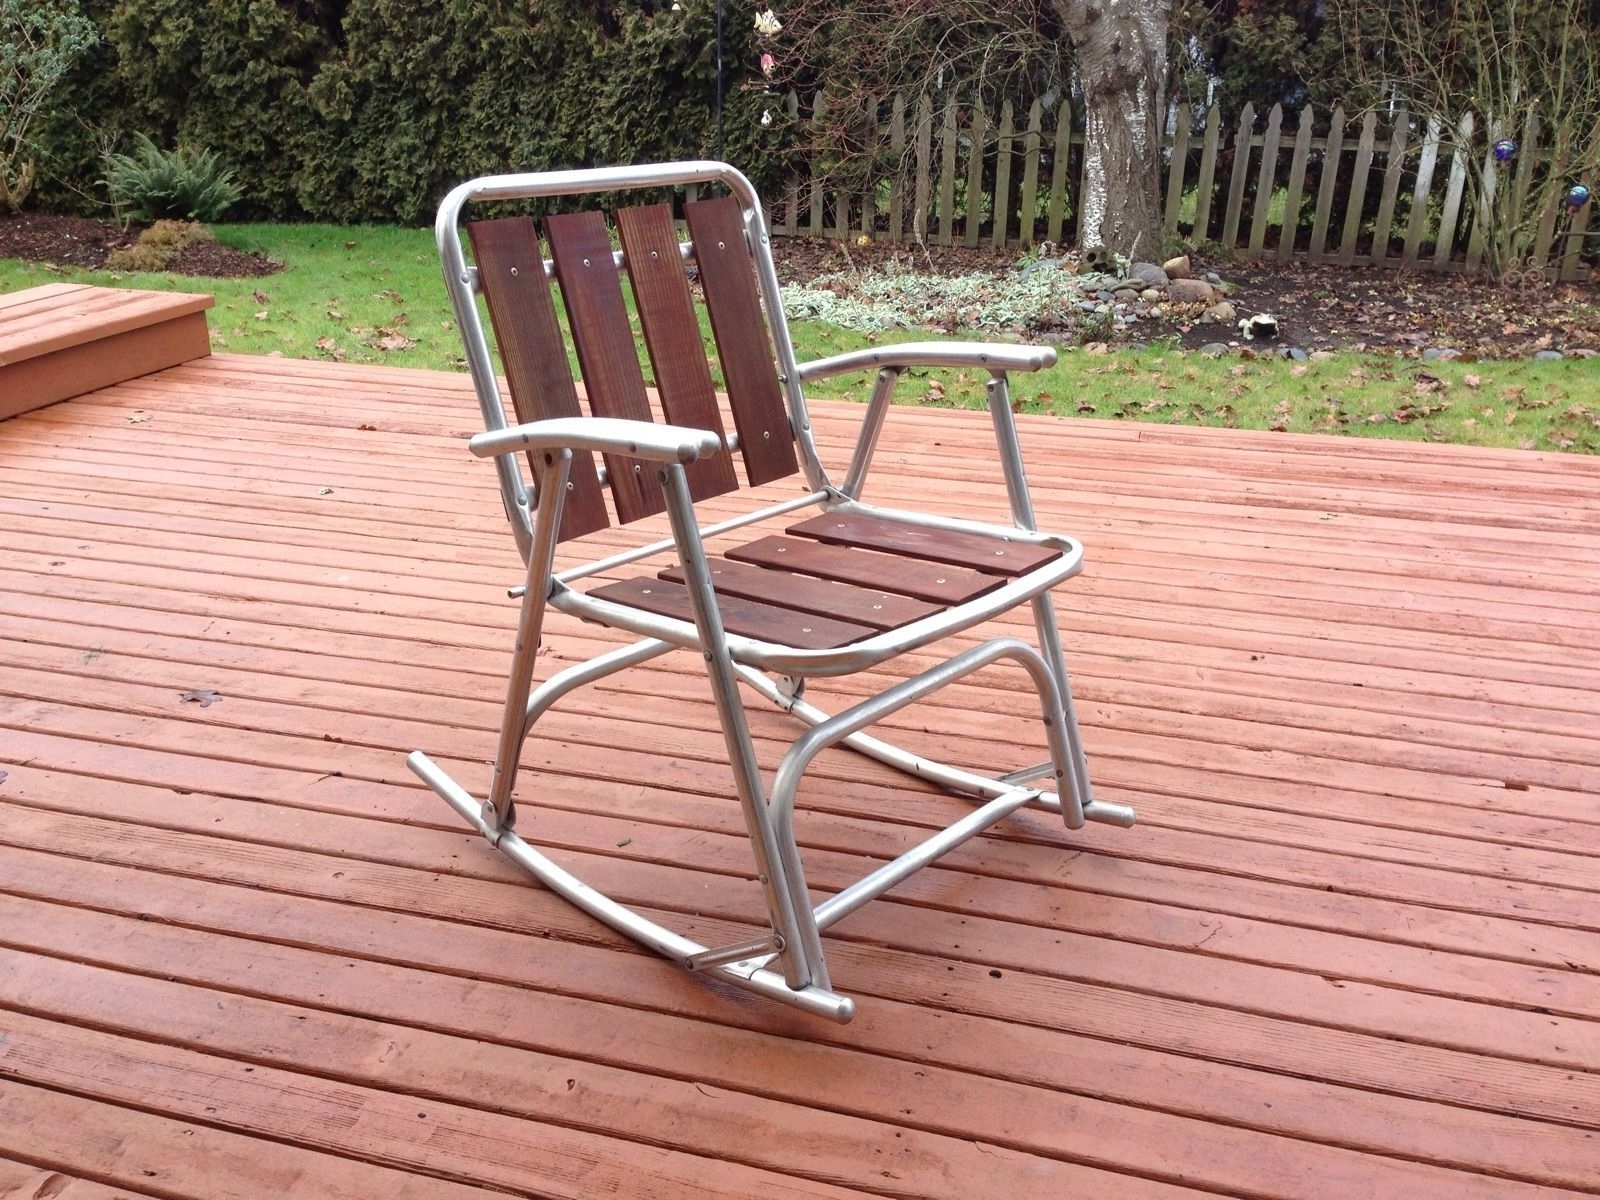 Most Recent 1 Vtg Redwood Aluminum Outdoor Patio Porch Lawn Rocking Chairs With Retro Outdoor Rocking Chairs (View 13 of 15)